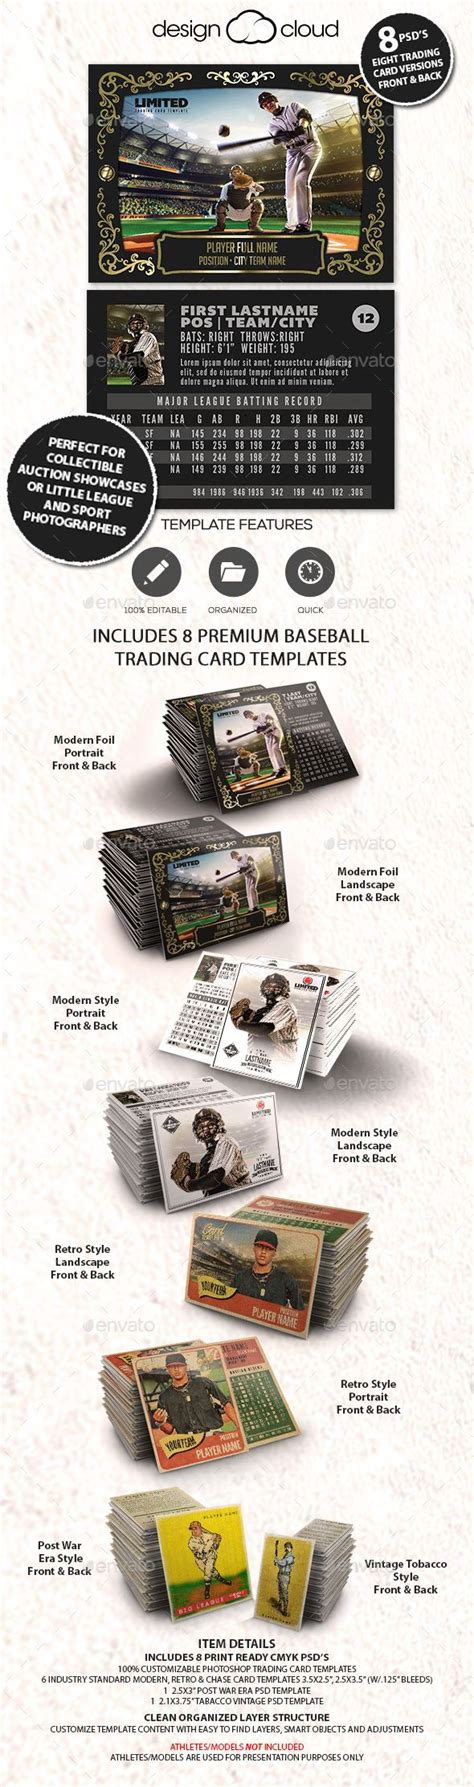 civil war trading card template 17 best images about design cloud flyers on